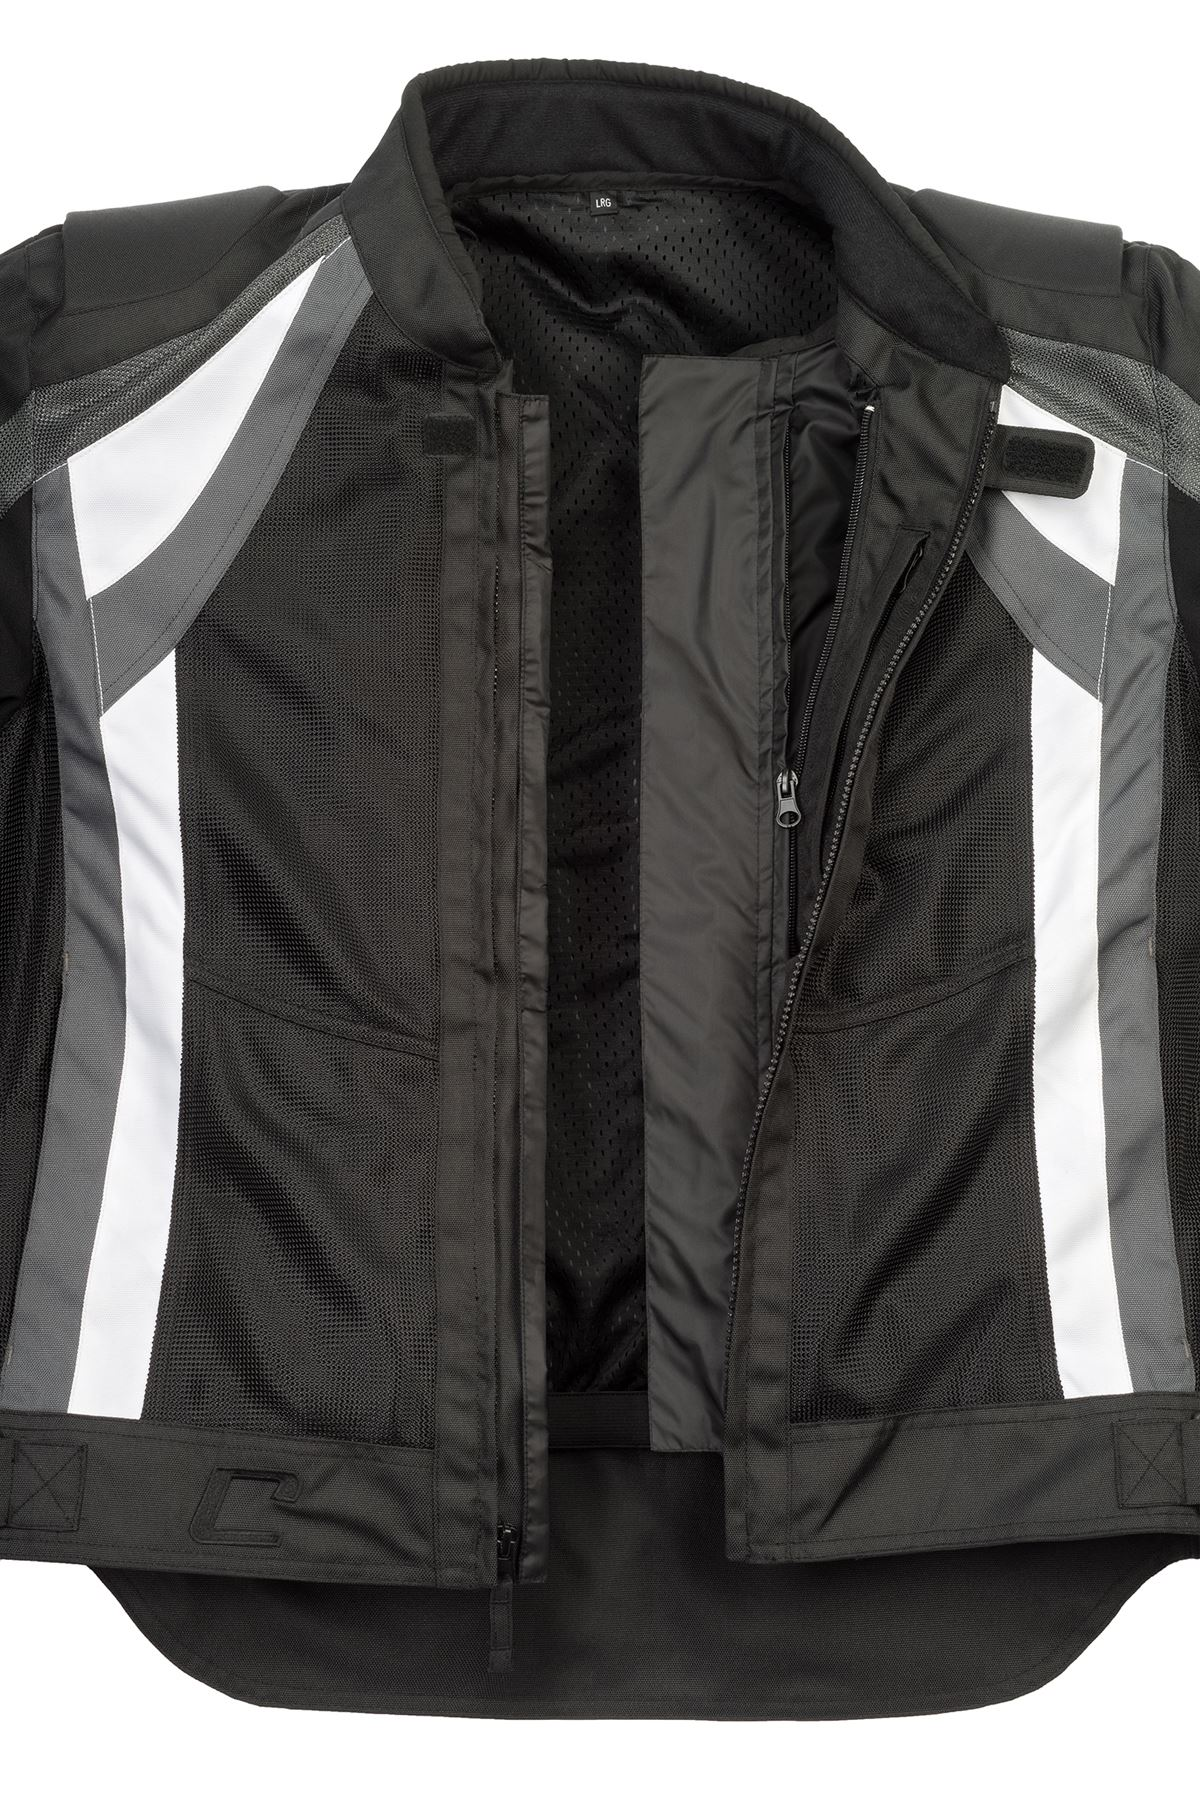 Cortech-VRX-Air-Textile-Motorcycle-Jacket-Waterproof-Mild-Hot-Weather-XS-3XL thumbnail 4